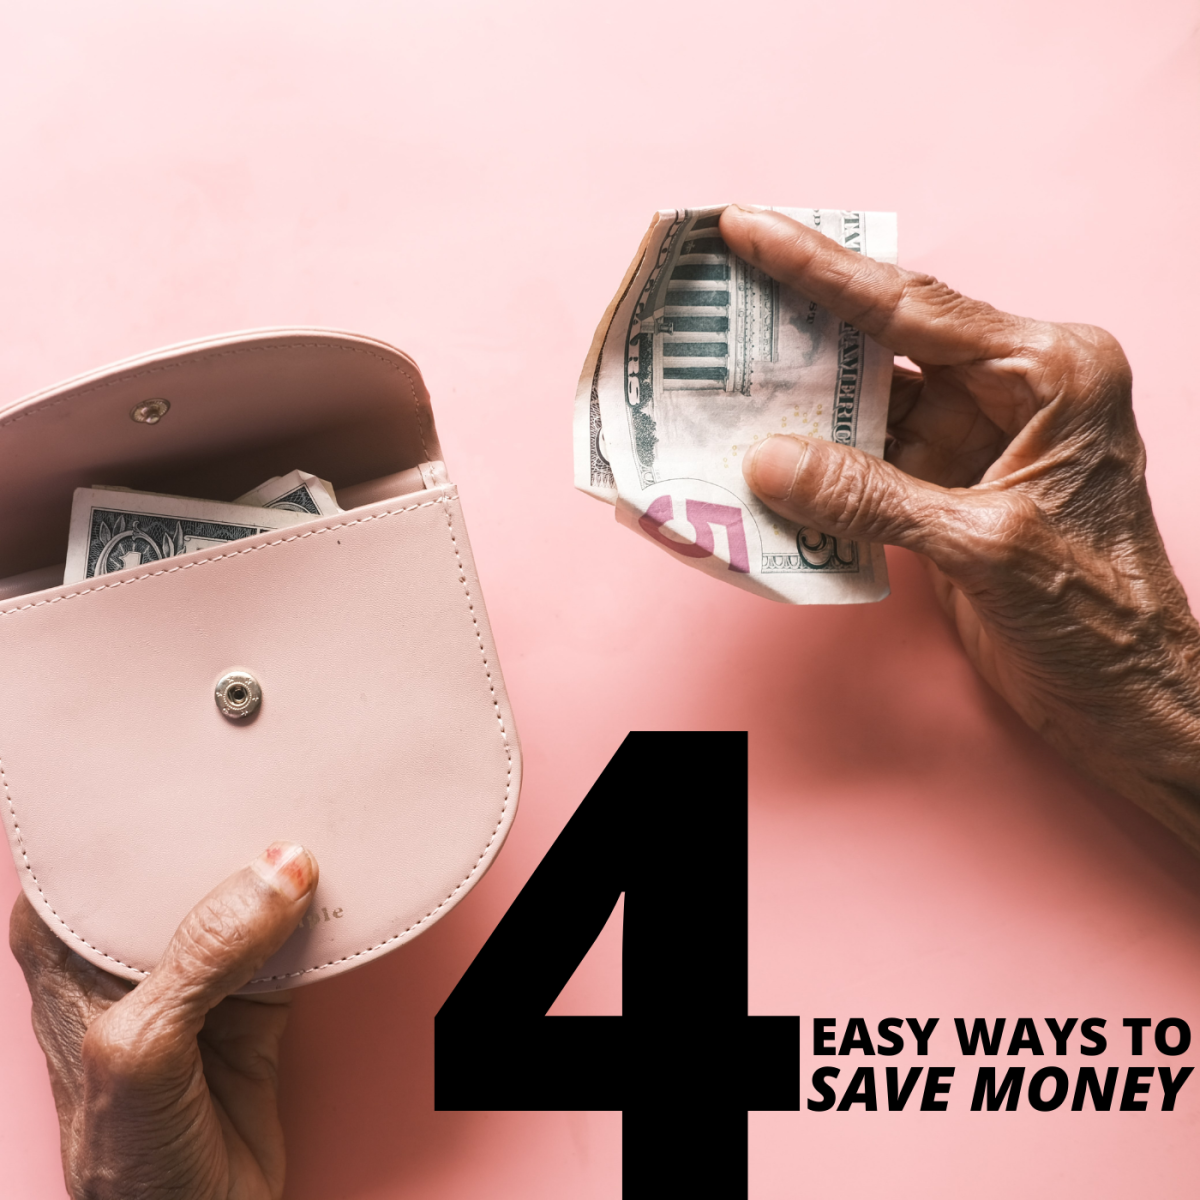 These four simple changes can help you save money on an ongoing basis.